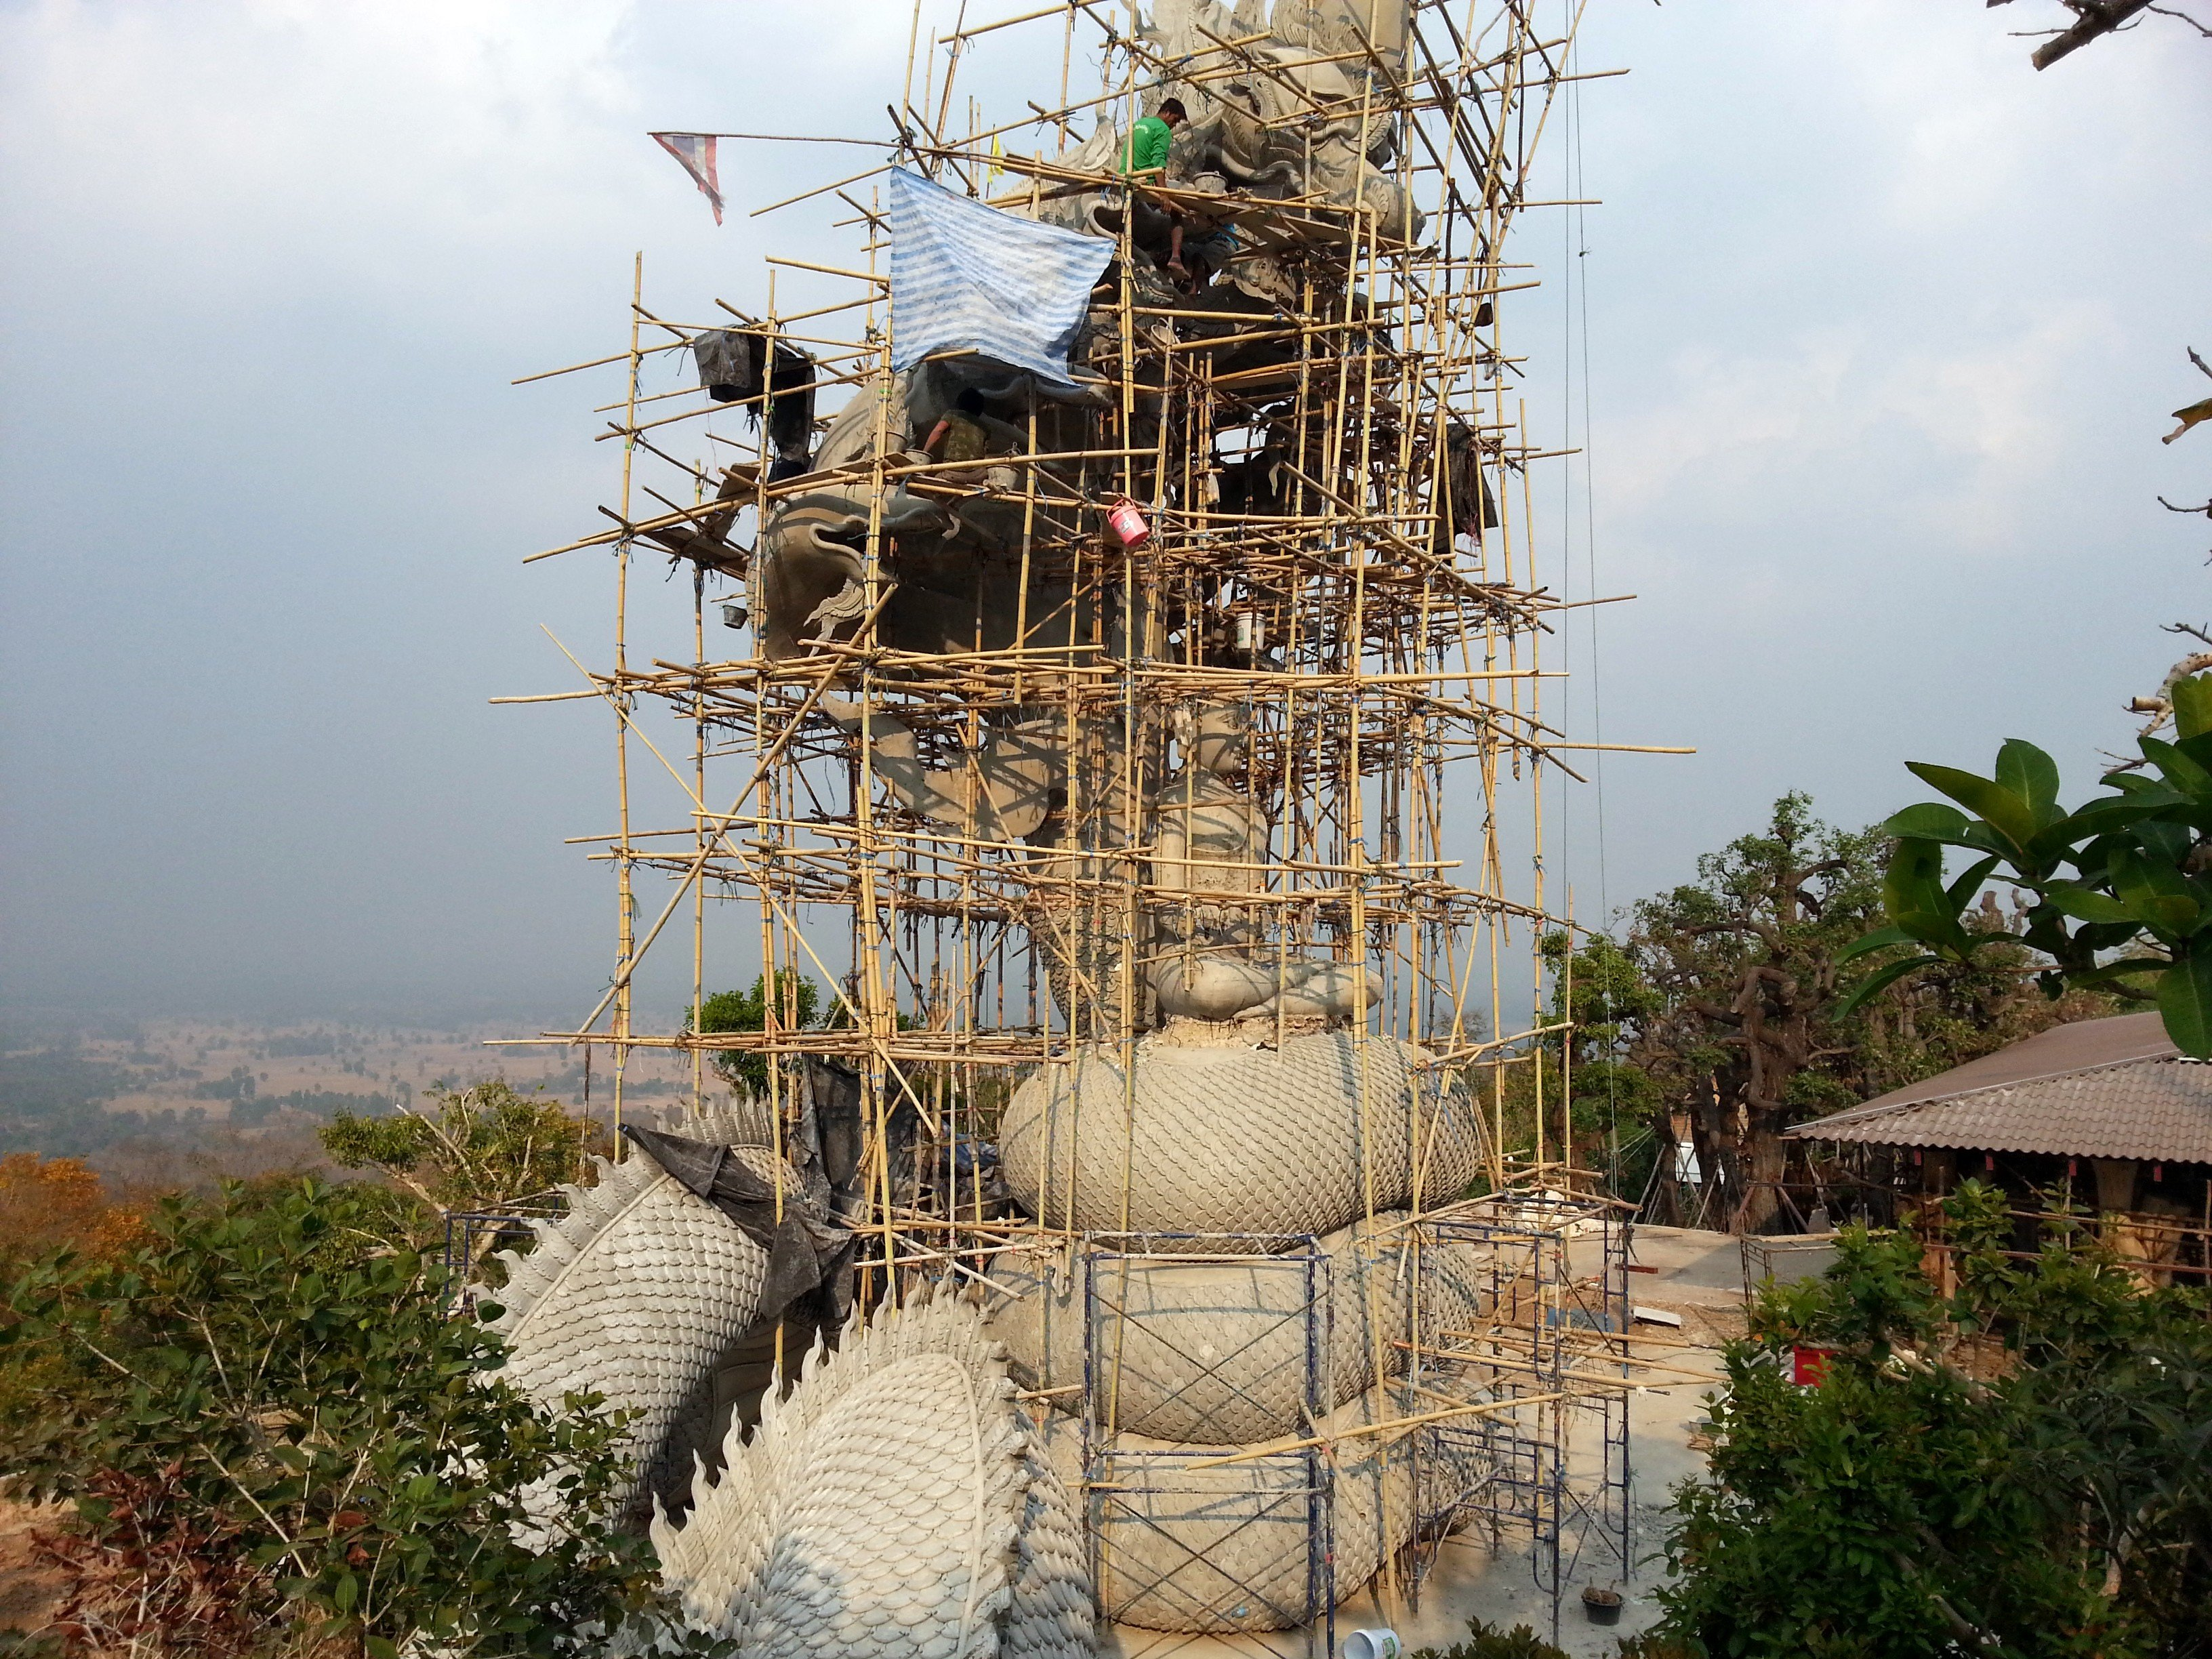 Statue under construction at Wat Tham Pha Daen